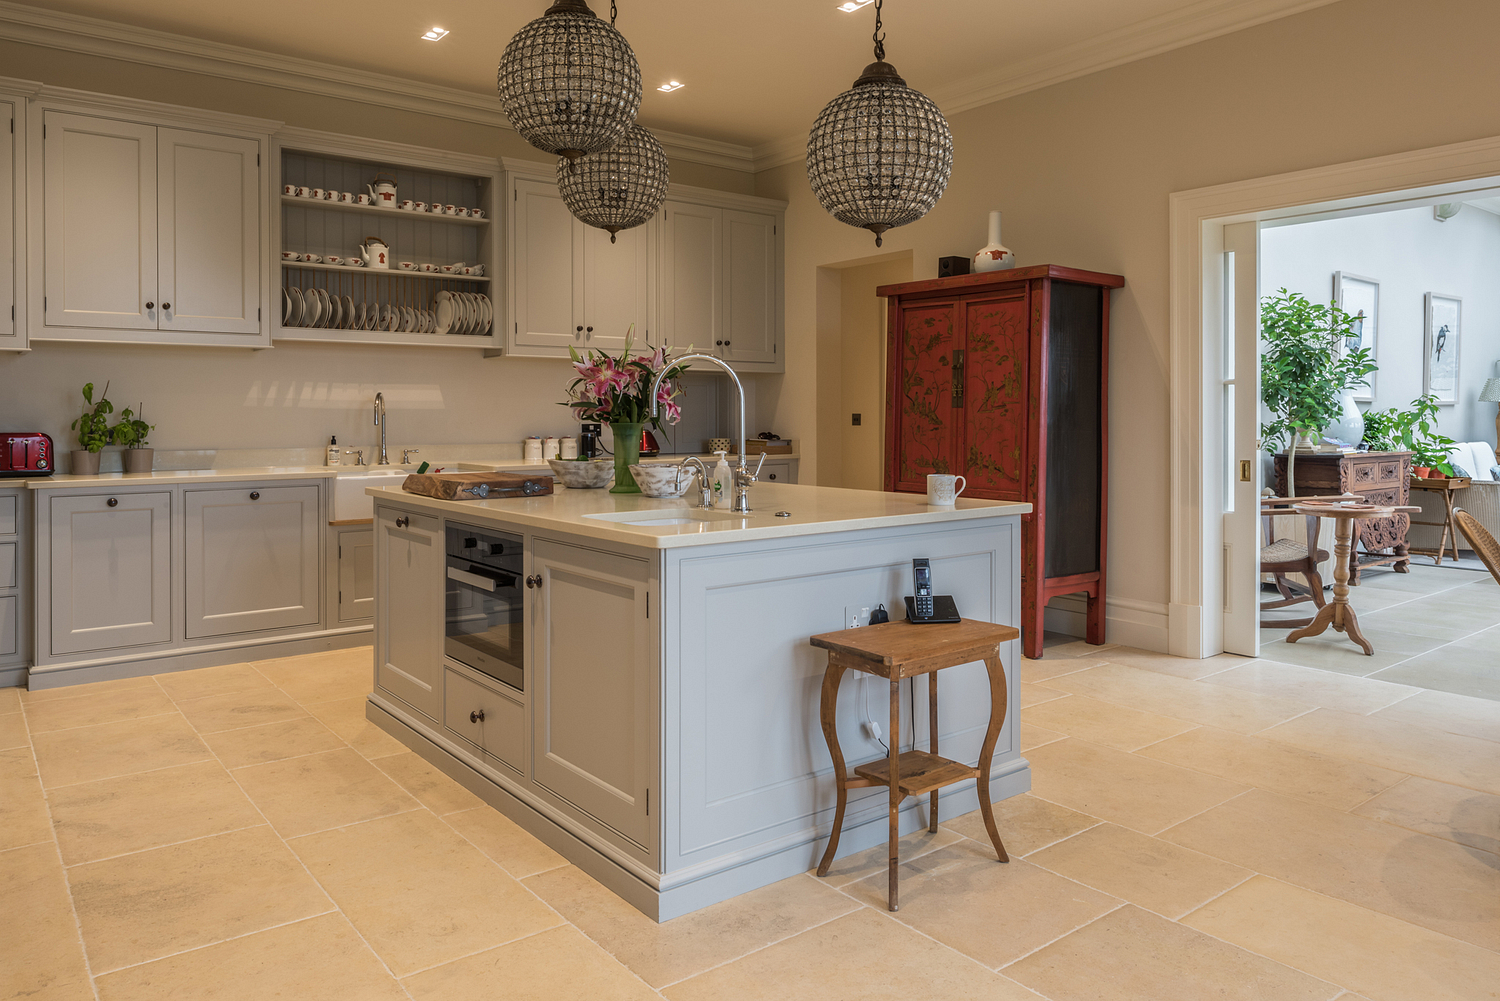 West Country kitchen with stone floor